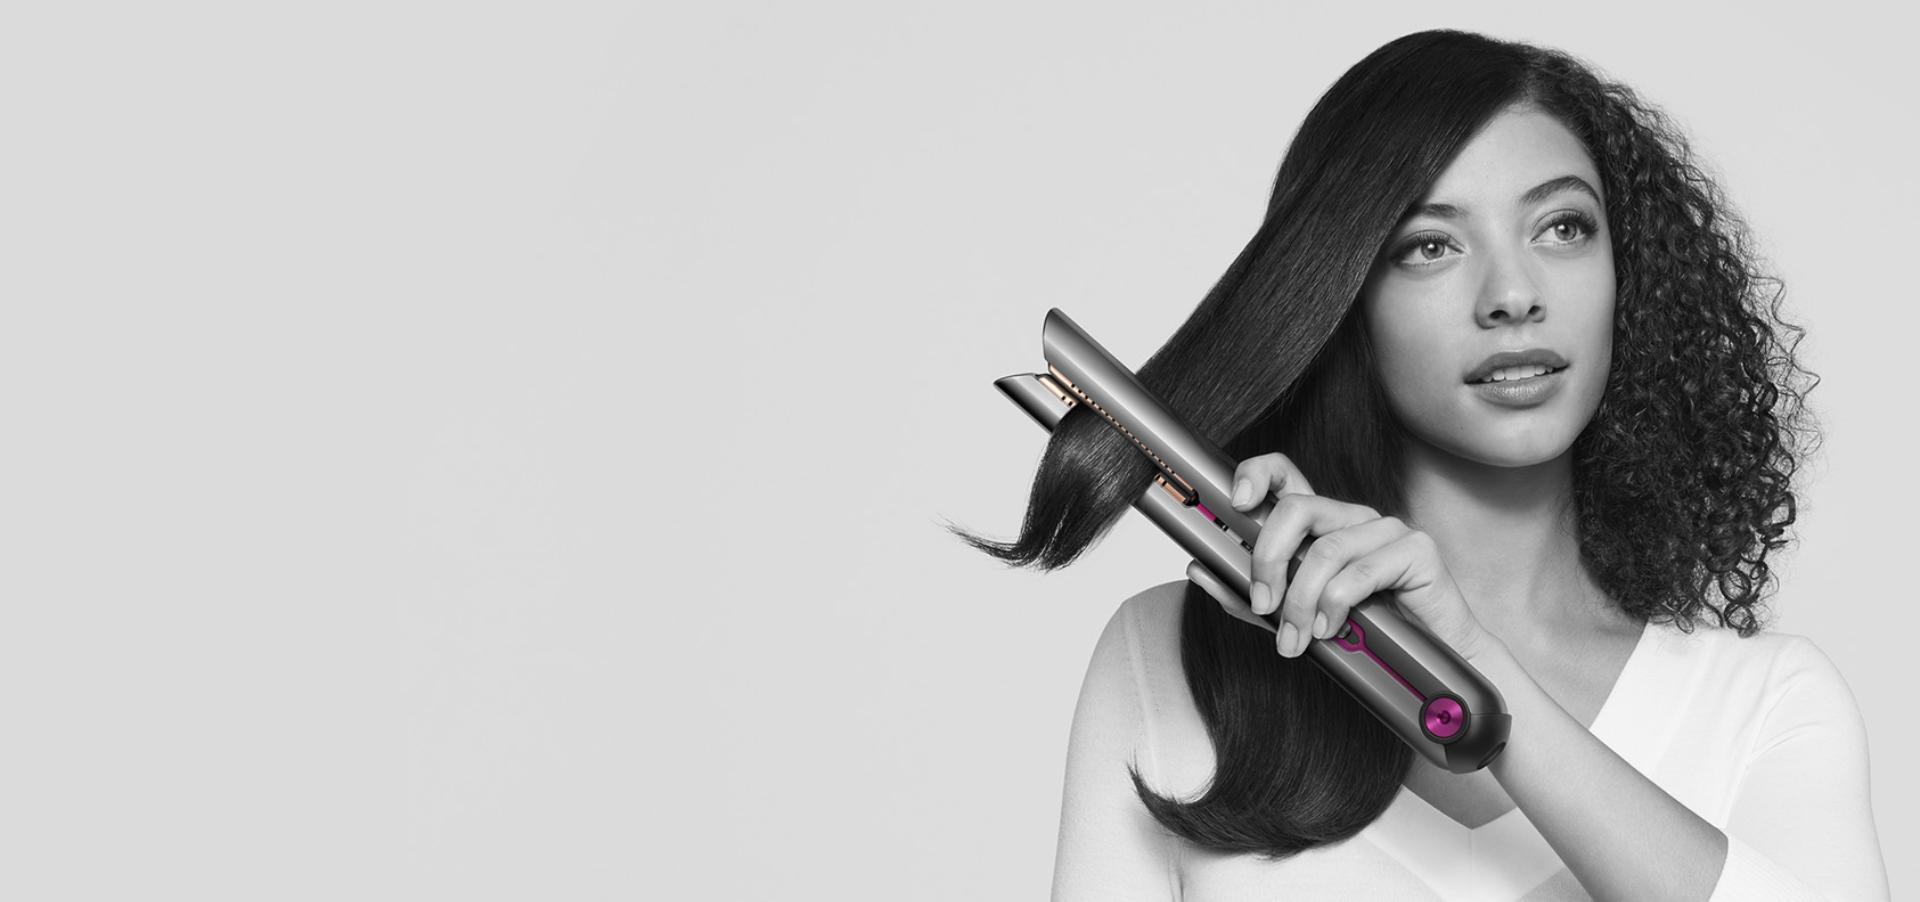 Woman achieving beautifully straight hair with the Dyson Corrale straightener